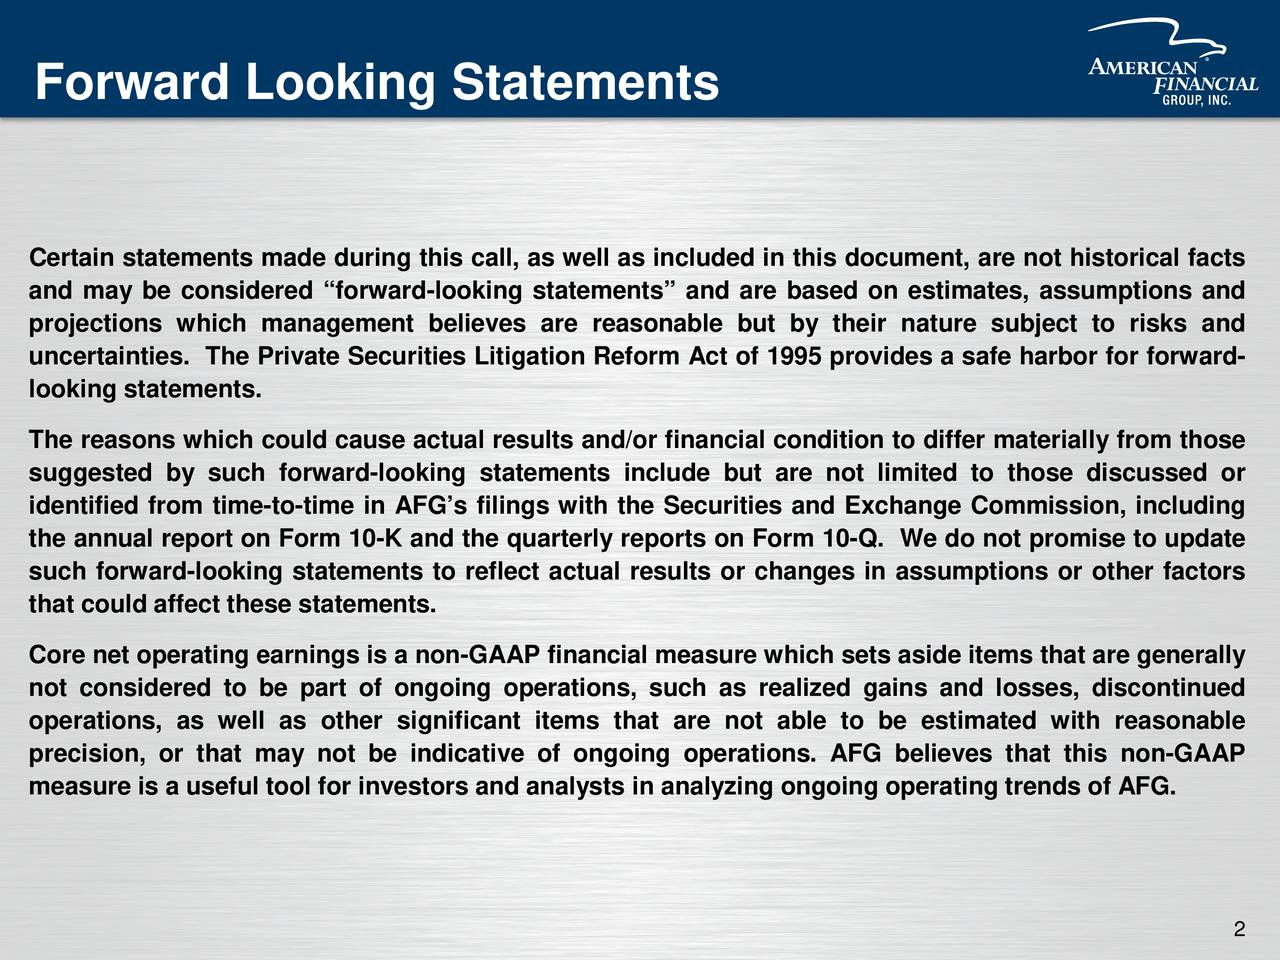 Certain statements made during this call, as well as included in this document, are not historical facts and may be considered forward-looking statements and are based on estimates, assumptions and projections which management believes are reasonable but by their nature subject to risks and uncertainties. The Private Securities Litigation Reform Act of 1995 provides a safe harbor for forward- looking statements. The reasons which could cause actual results and/or financial condition to differ materially from those suggested by such forward-looking statements include but are not limited to those discussed or identified from time-to-time in AFGs filings with the Securities and Exchange Commission, including the annual report on Form 10-K and the quarterly reports on Form 10-Q. We do not promise to update such forward-looking statements to reflect actual results or changes in assumptions or other factors that could affect these statements. Core net operatingearnings is a non-GAAP financial measure which sets aside items that are generally not considered to be part of ongoing operations, such as realized gains and losses, discontinued operations, as well as other significant items that are not able to be estimated with reasonable precision, or that may not be indicative of ongoing operations. AFG believes that this non-GAAP measure is a useful tool for investors and analysts in analyzing ongoing operating trends of AFG. 2